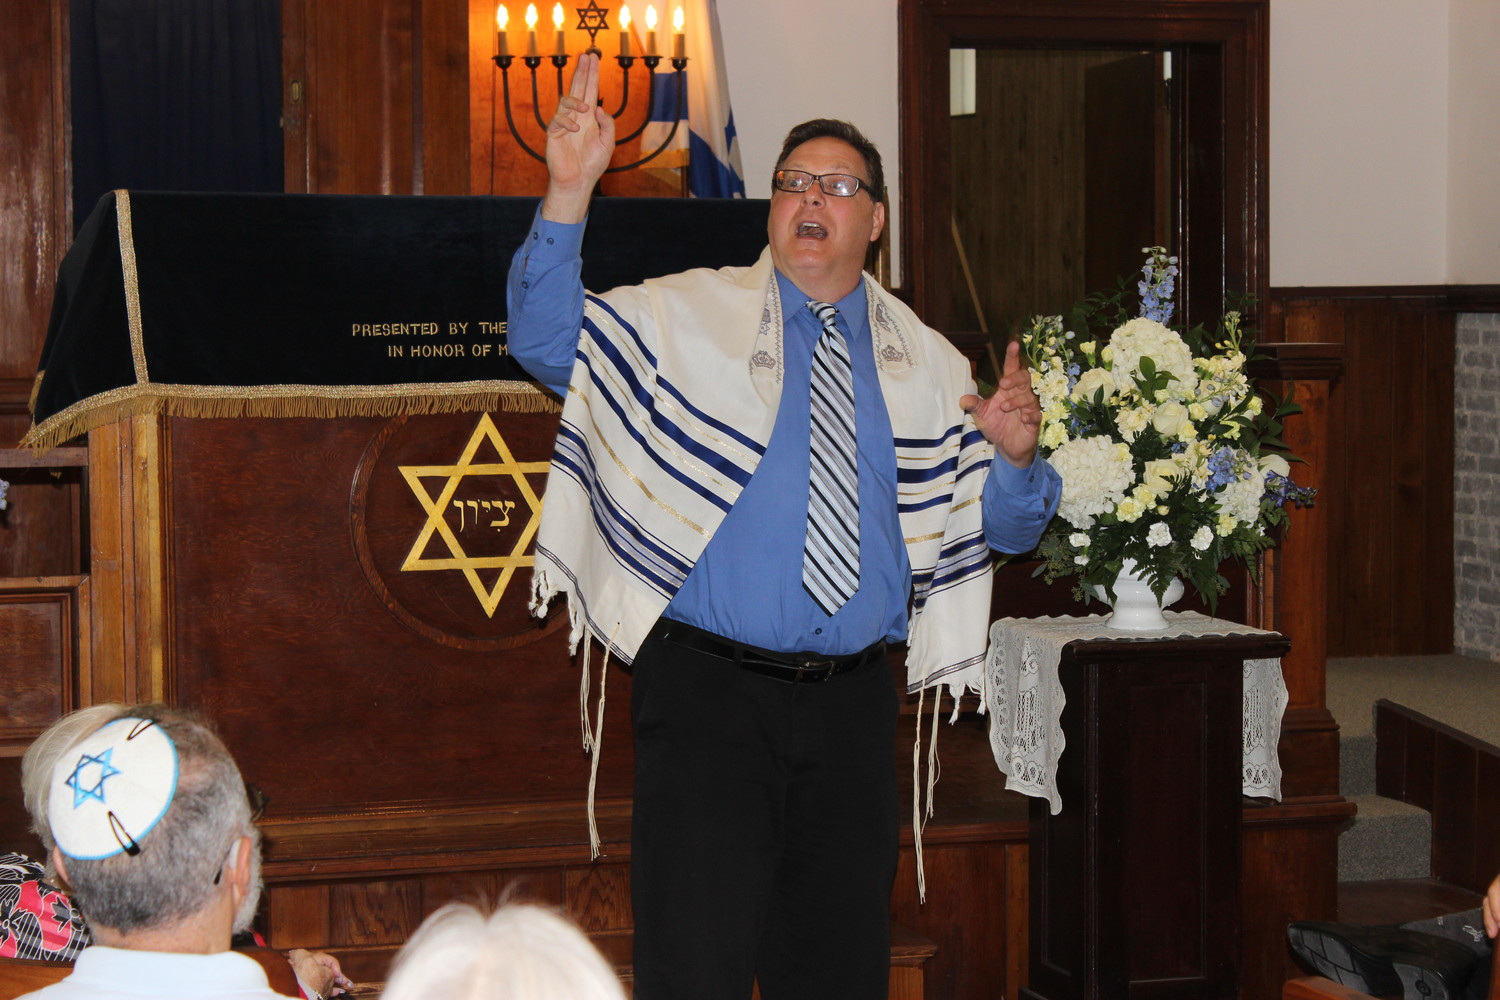 Rabbi Joel Fox leads the congregation in song.